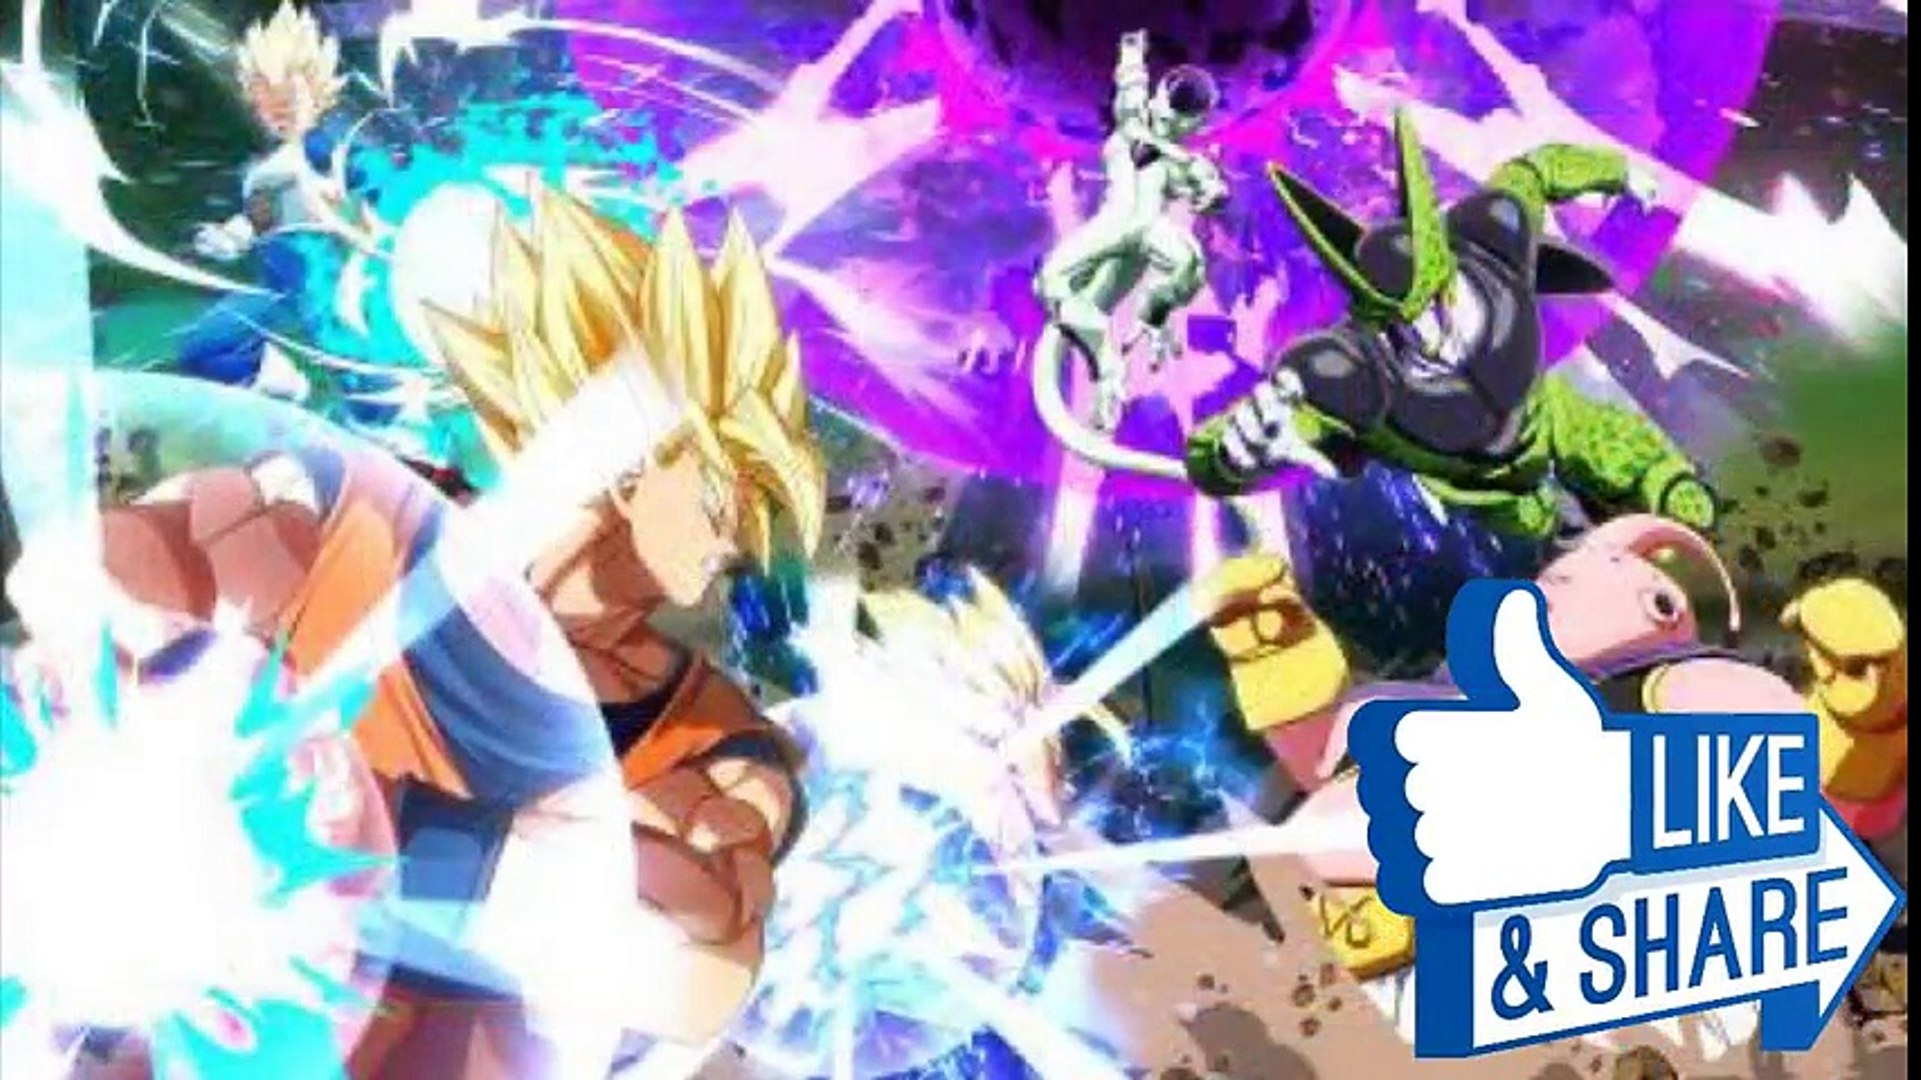 NEW DRAGON BALL 2018 GAME LEAKED! Dragon Ball Fighter 2018! DBZ Fighters CONFIRMED!